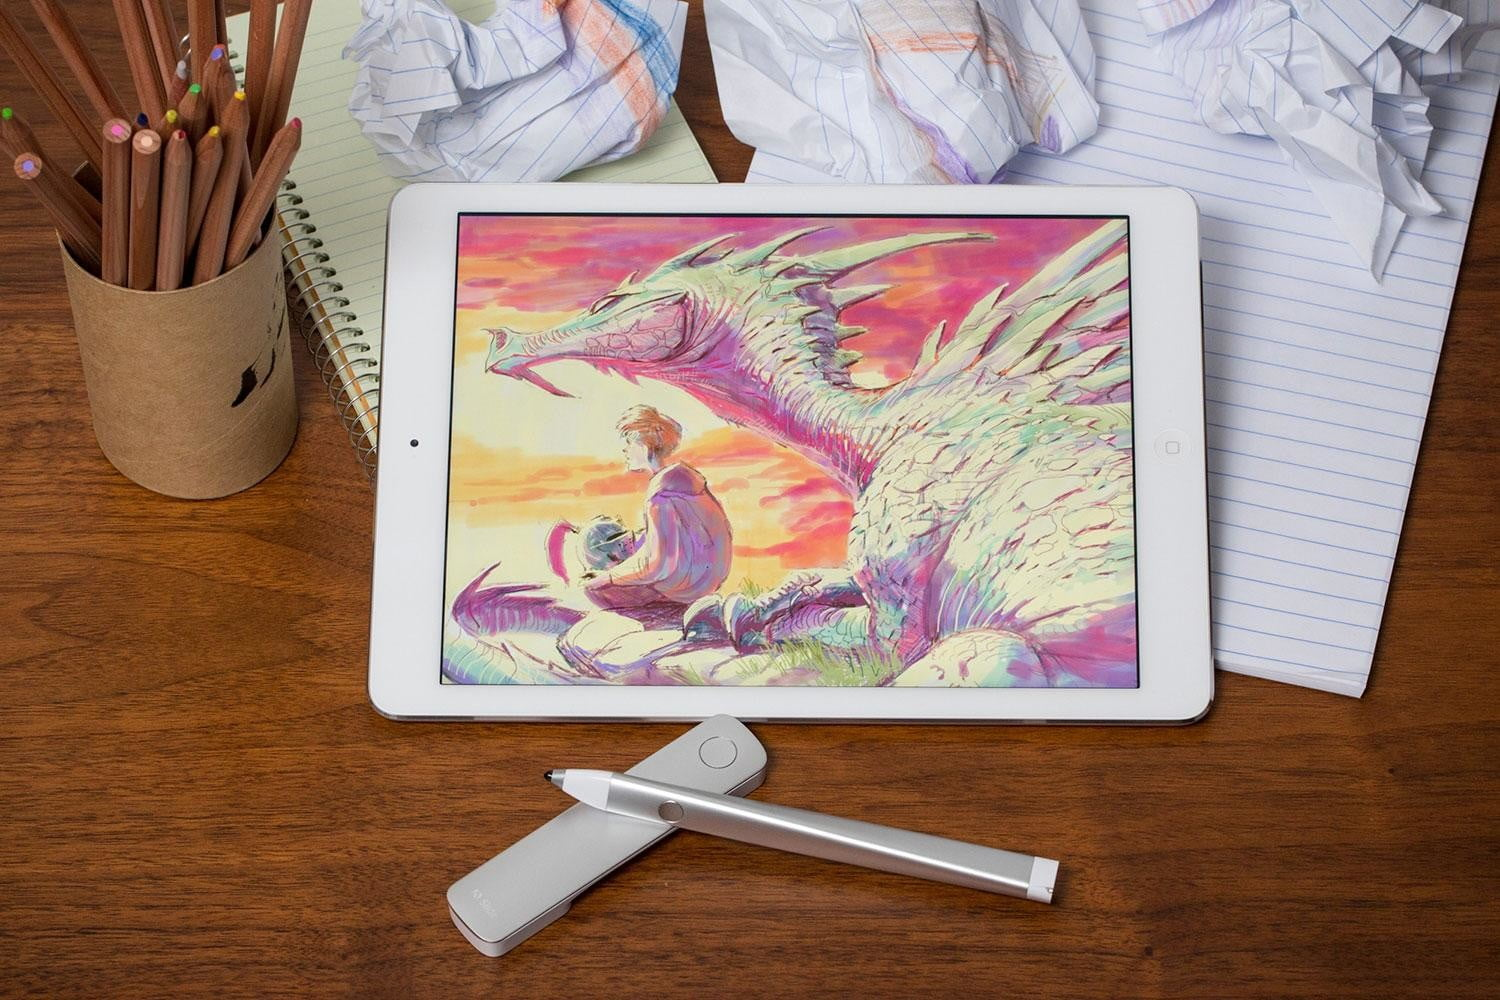 The best stylus for note takers and artists